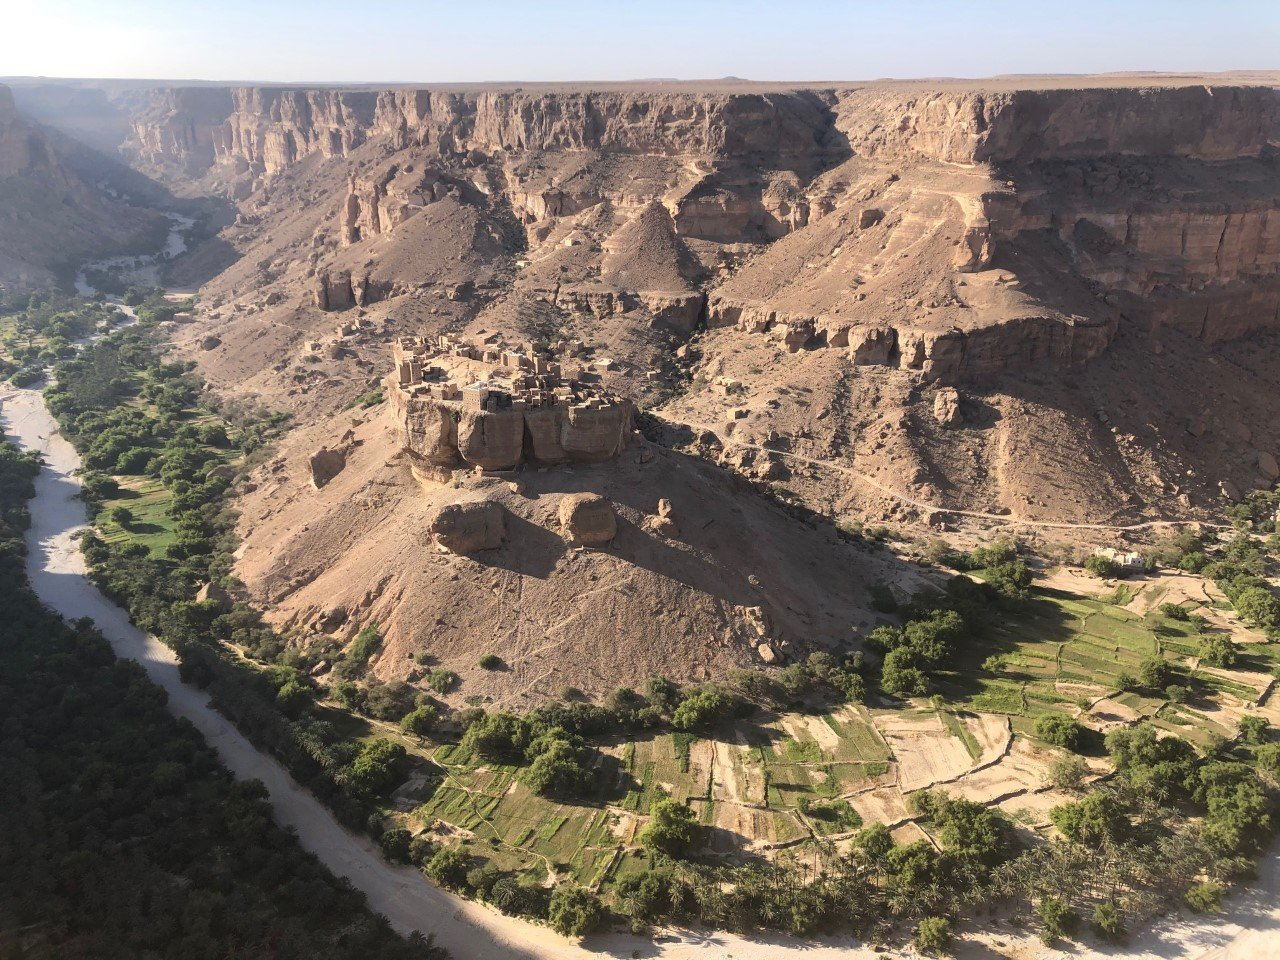 Hayd al Jazeel, Wadi Dawan. Photo credit: Lisa Pagotto